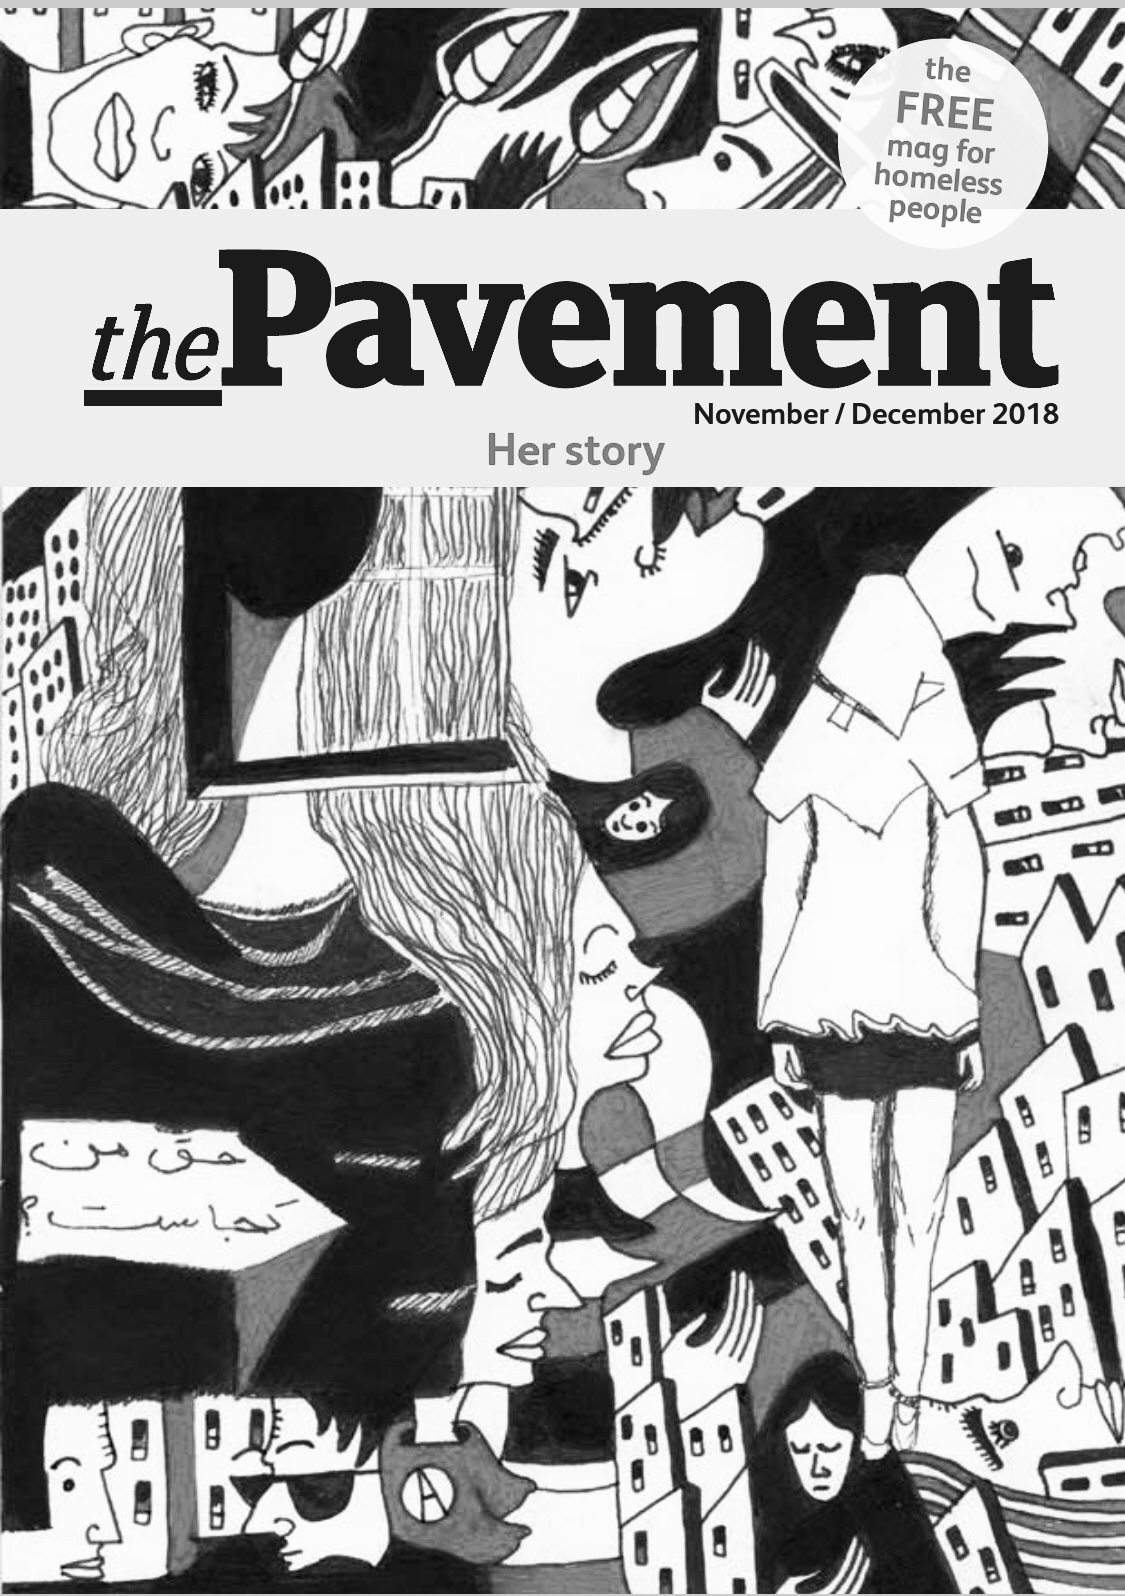 Front cover of the Pavement her story edition